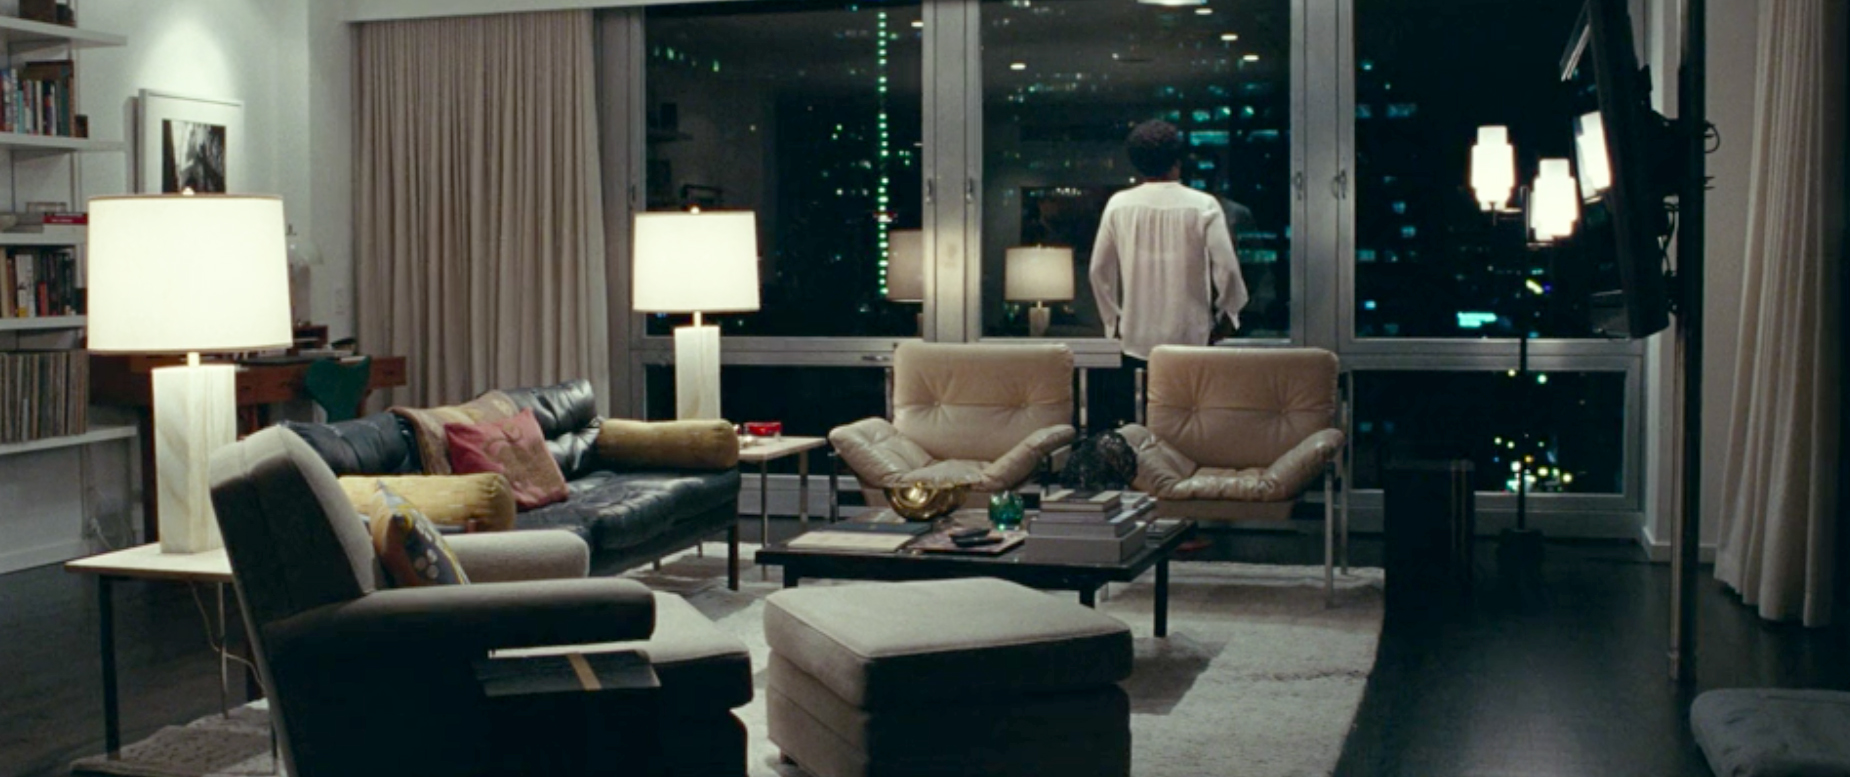 widows-rawlings-apartment-lounge-interiors-film interior design tips